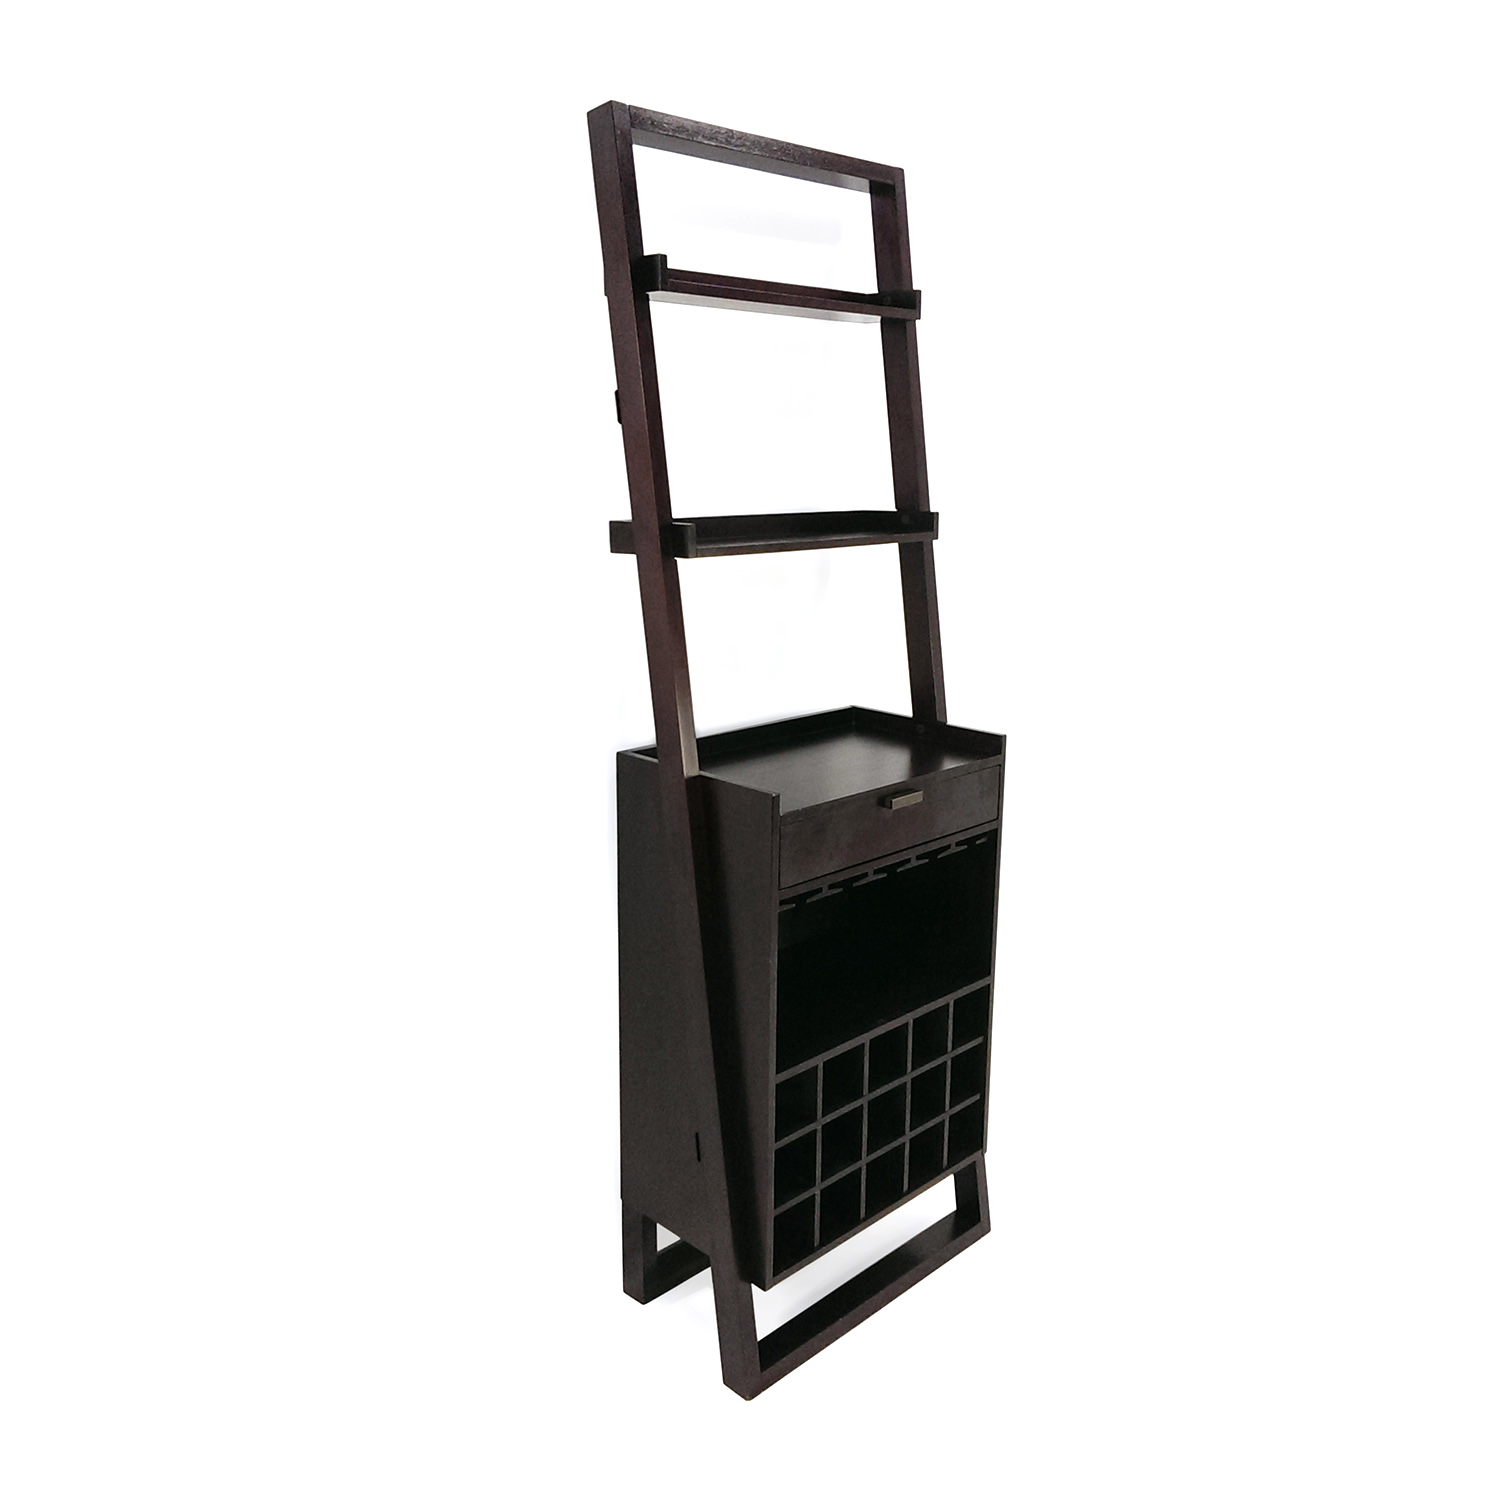 Crate and Barrel Crate and Barrel Leaning Wine Rack second hand